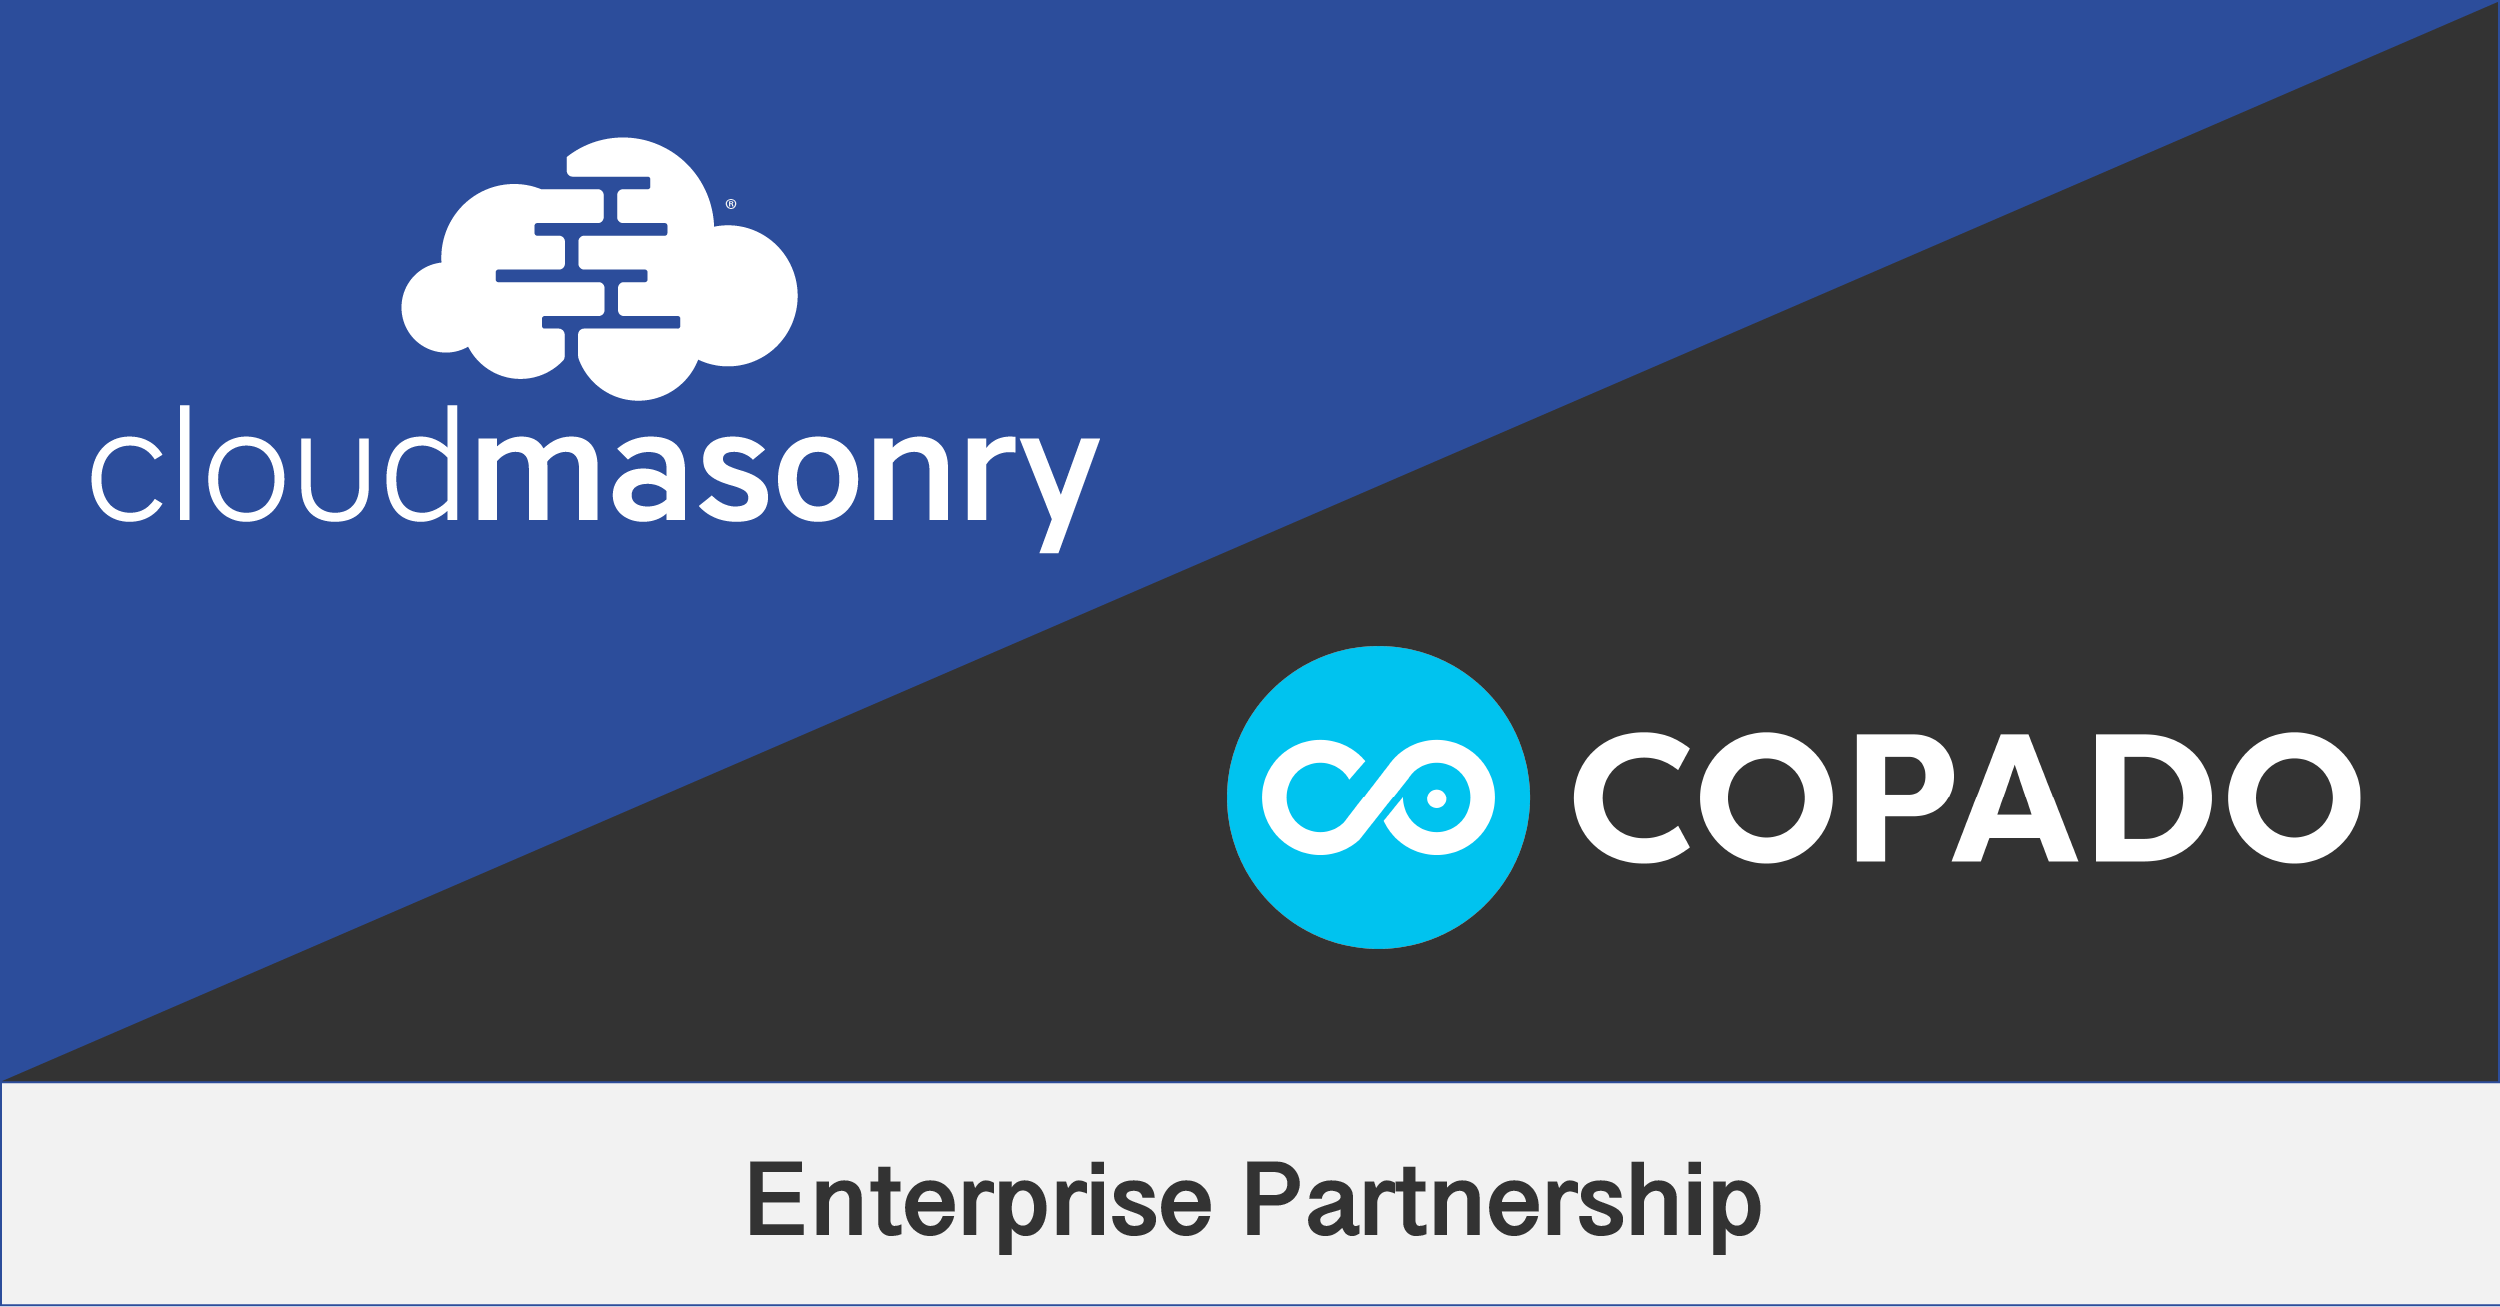 CloudMasonry And Copado Sign Partnership Agreement